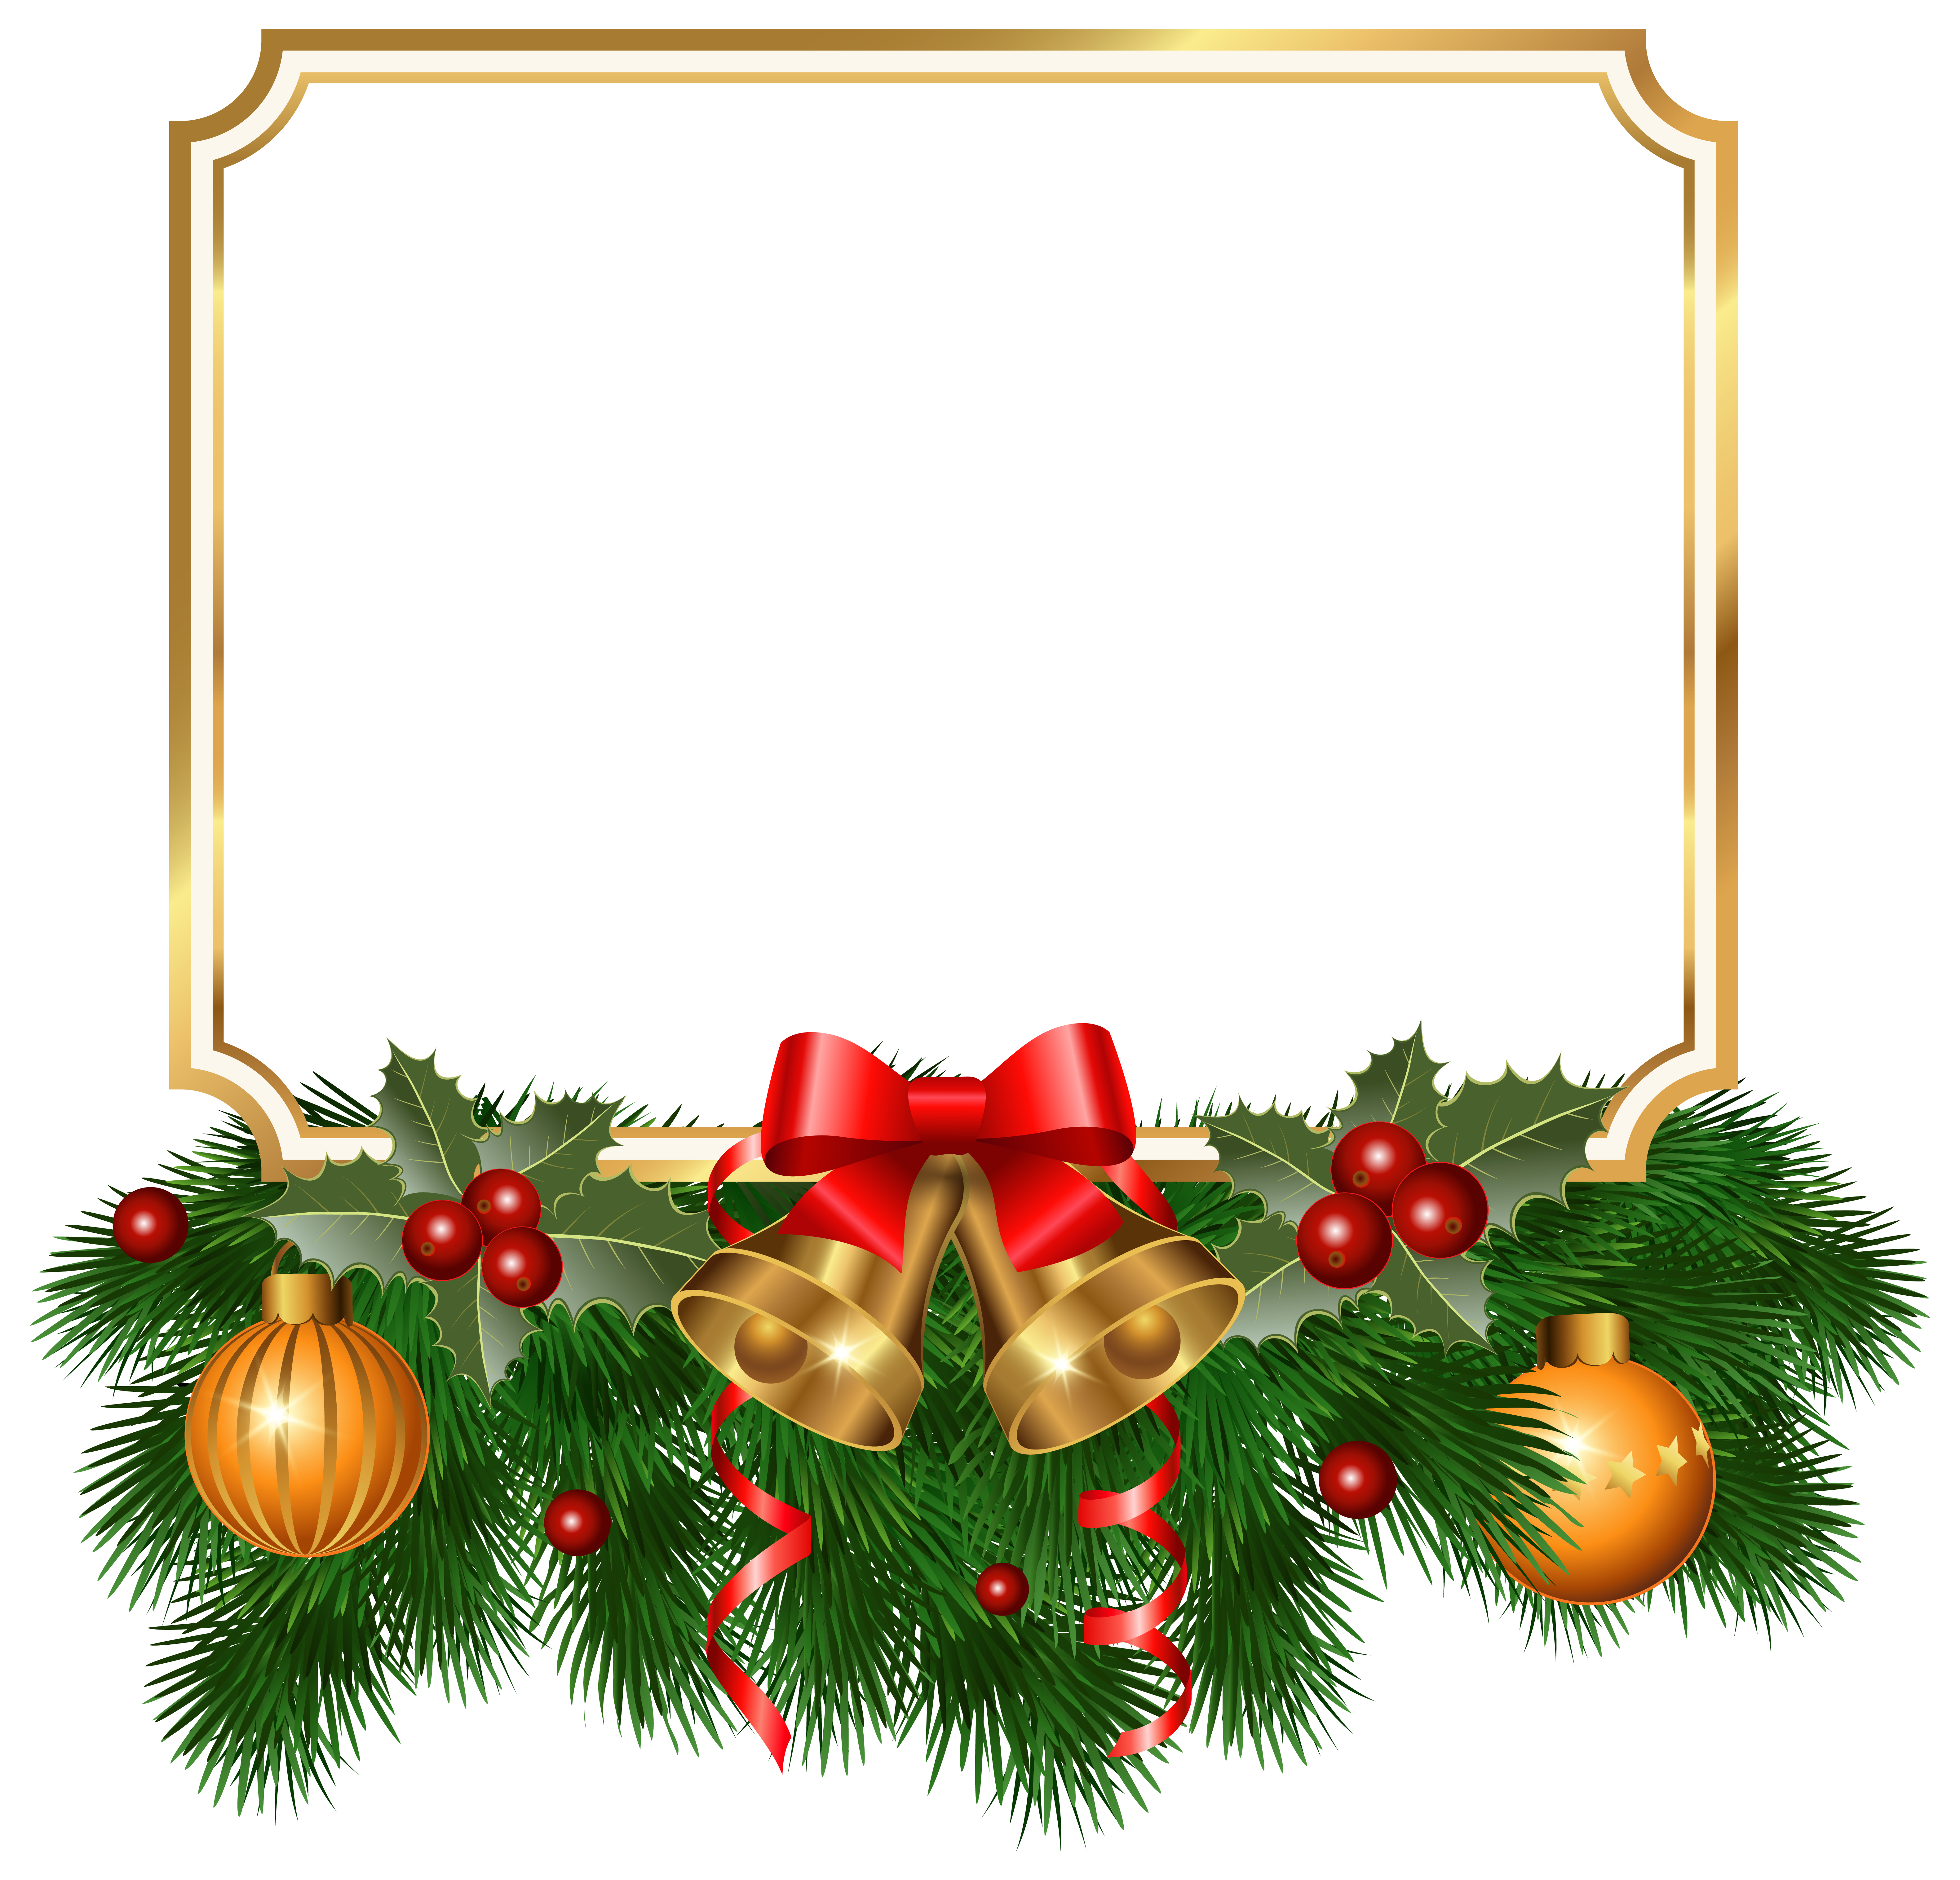 image library download Clipart christmas borders. Golden border png image